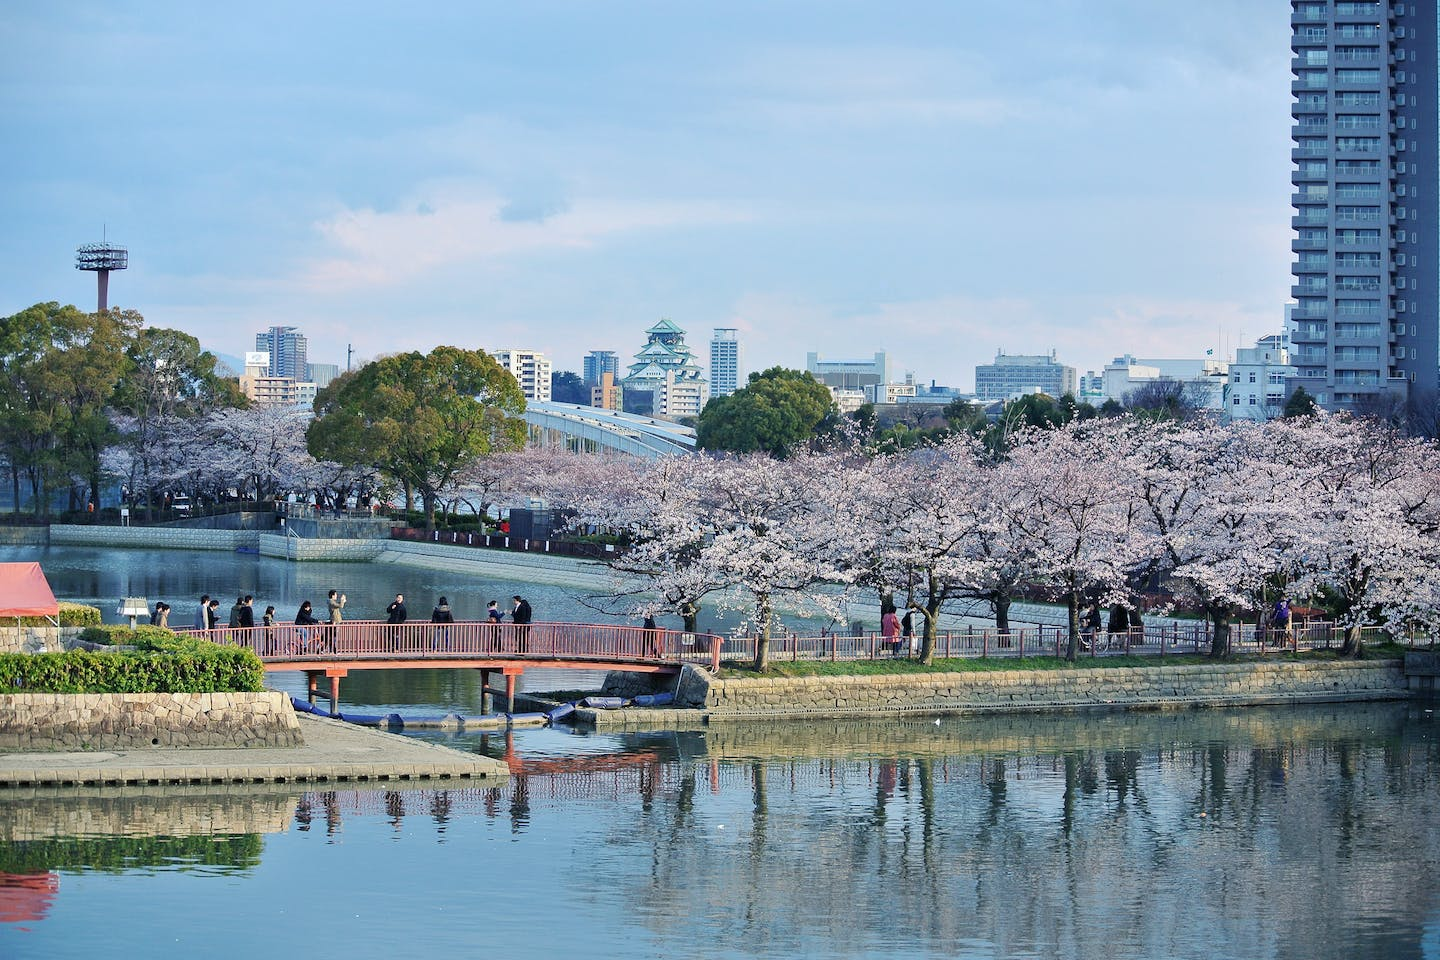 Cherry blossom trees bloom in the city